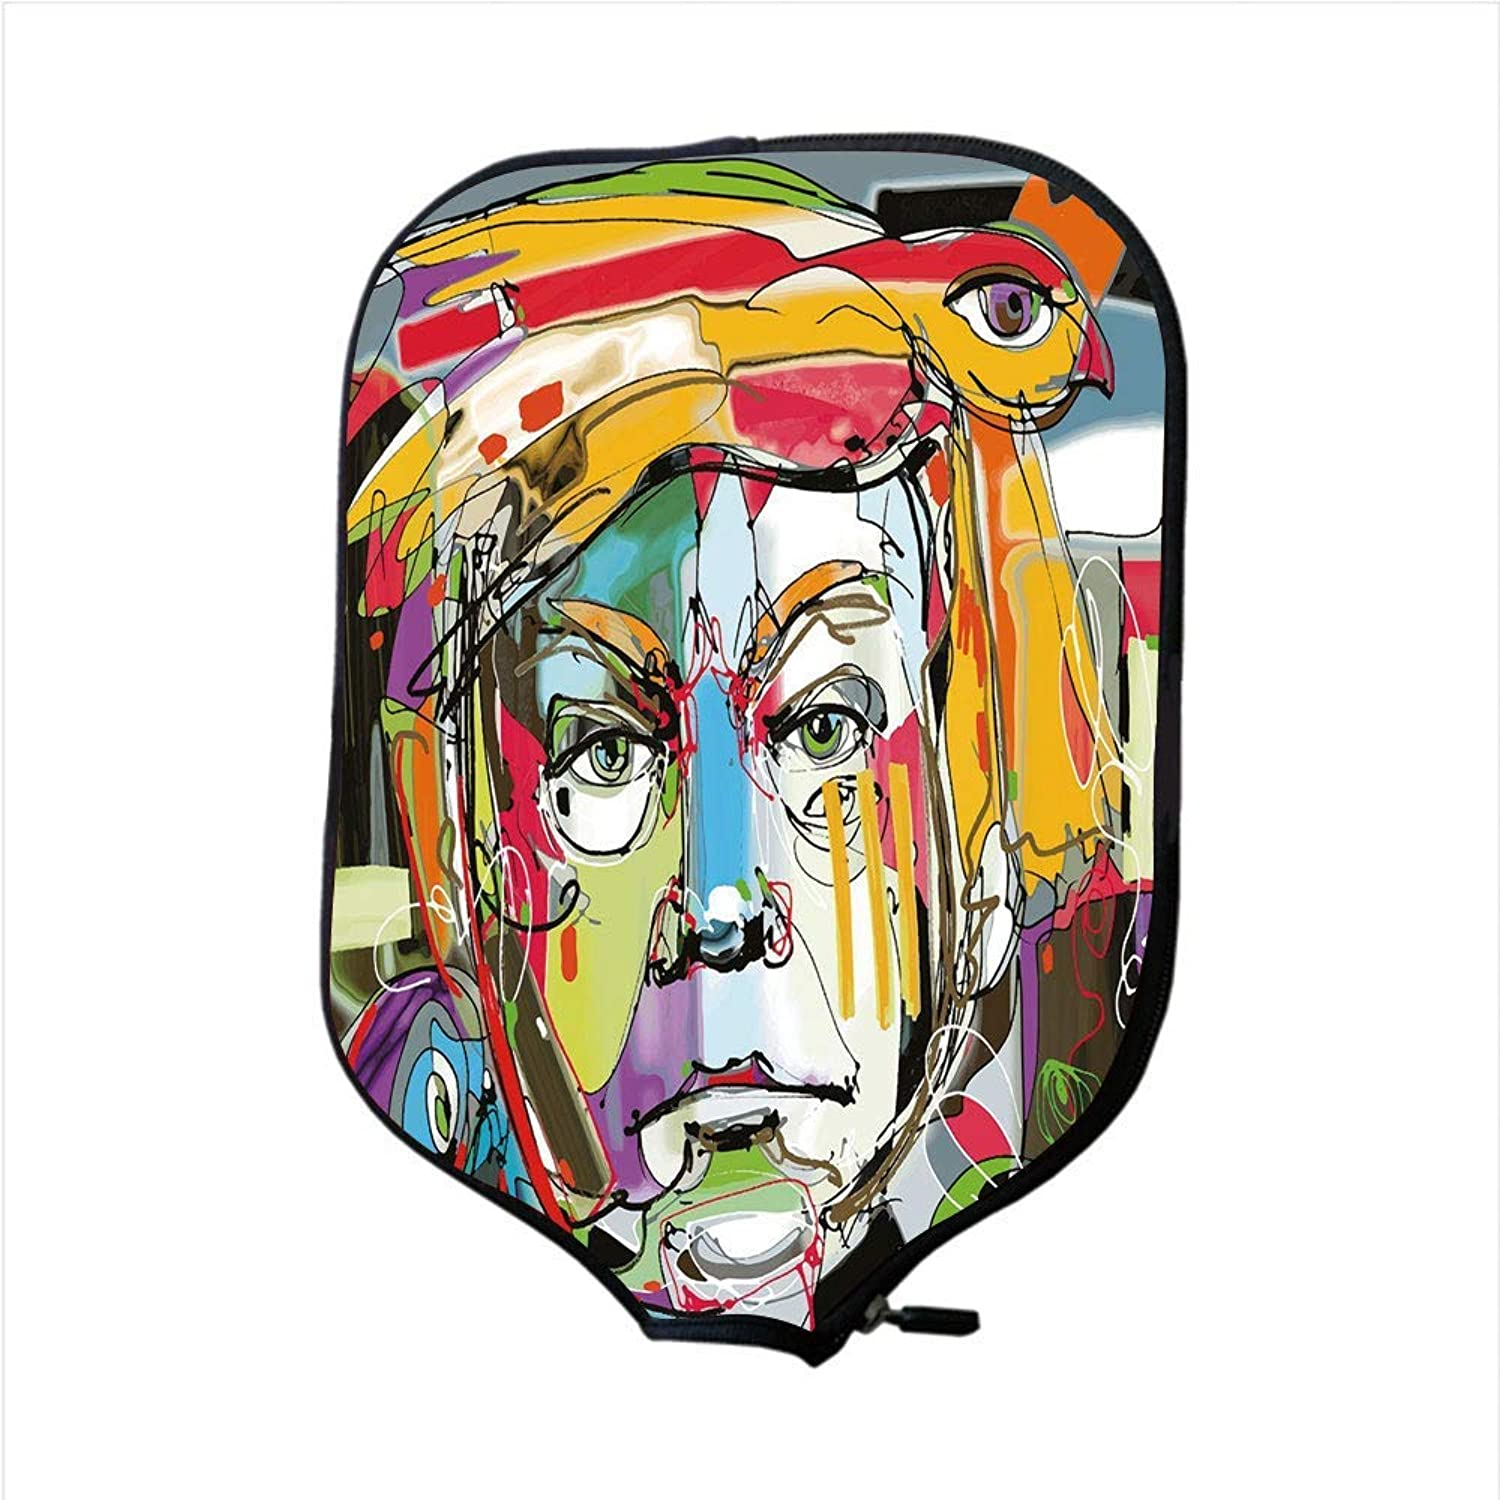 Fine Neoprene Pickleball Paddle Racket Cover Case,Quirky Decor,Abstract Contemporary Art Portrait of Man with a Bird on His Head Paint Style,Multicolor,Fit for Most Rackets